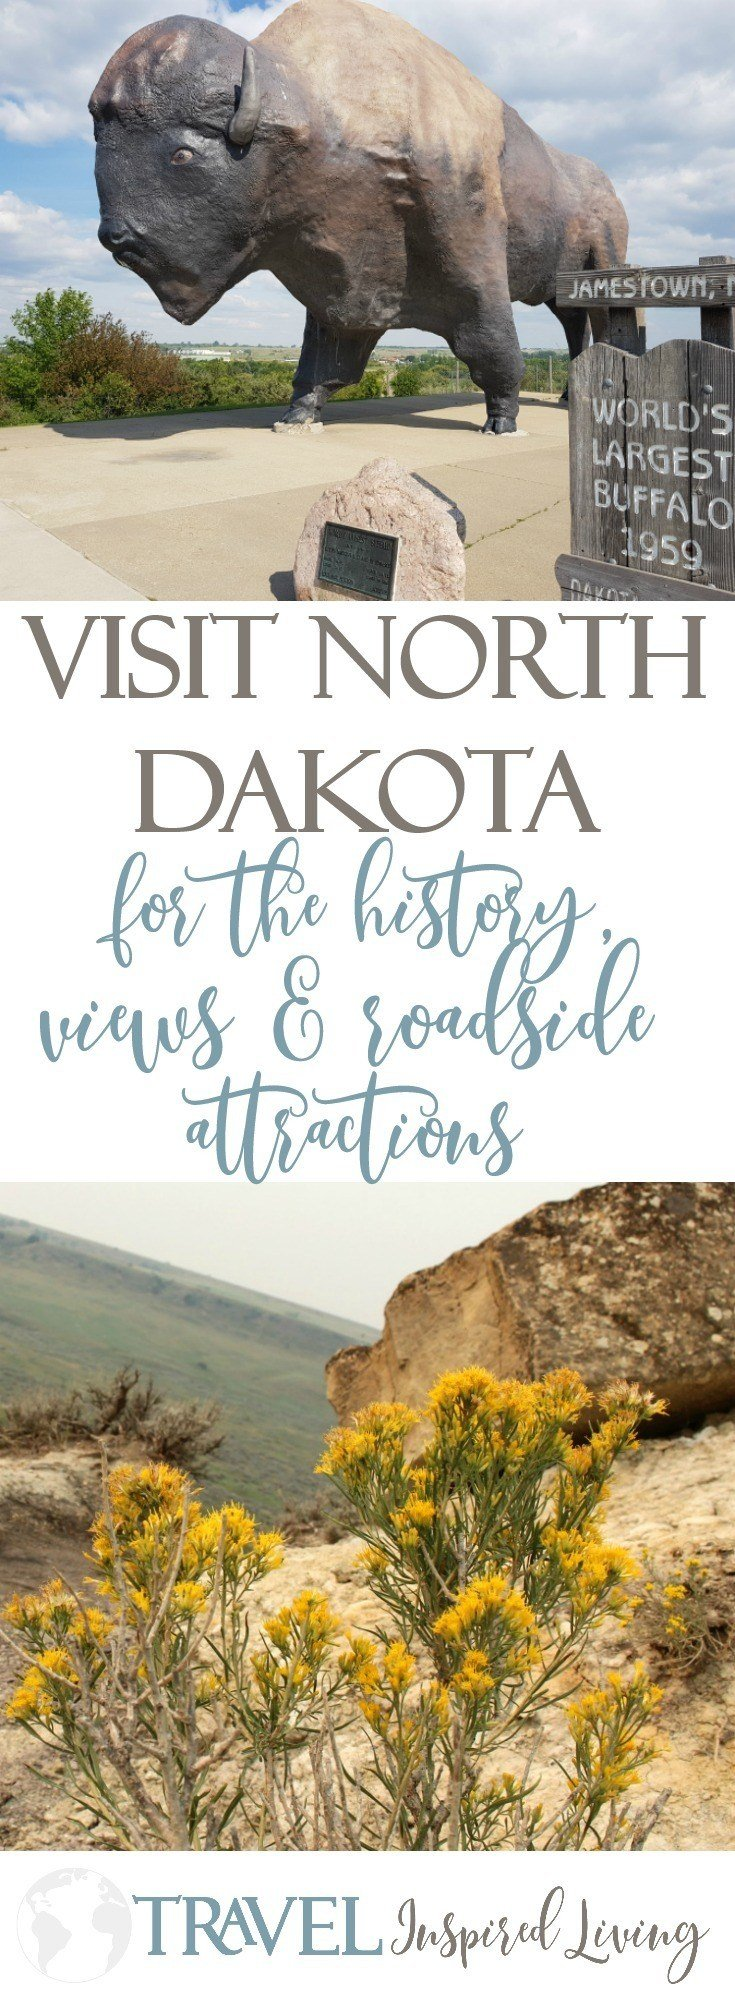 Visit North Dakota for the history, views and roadside attractions